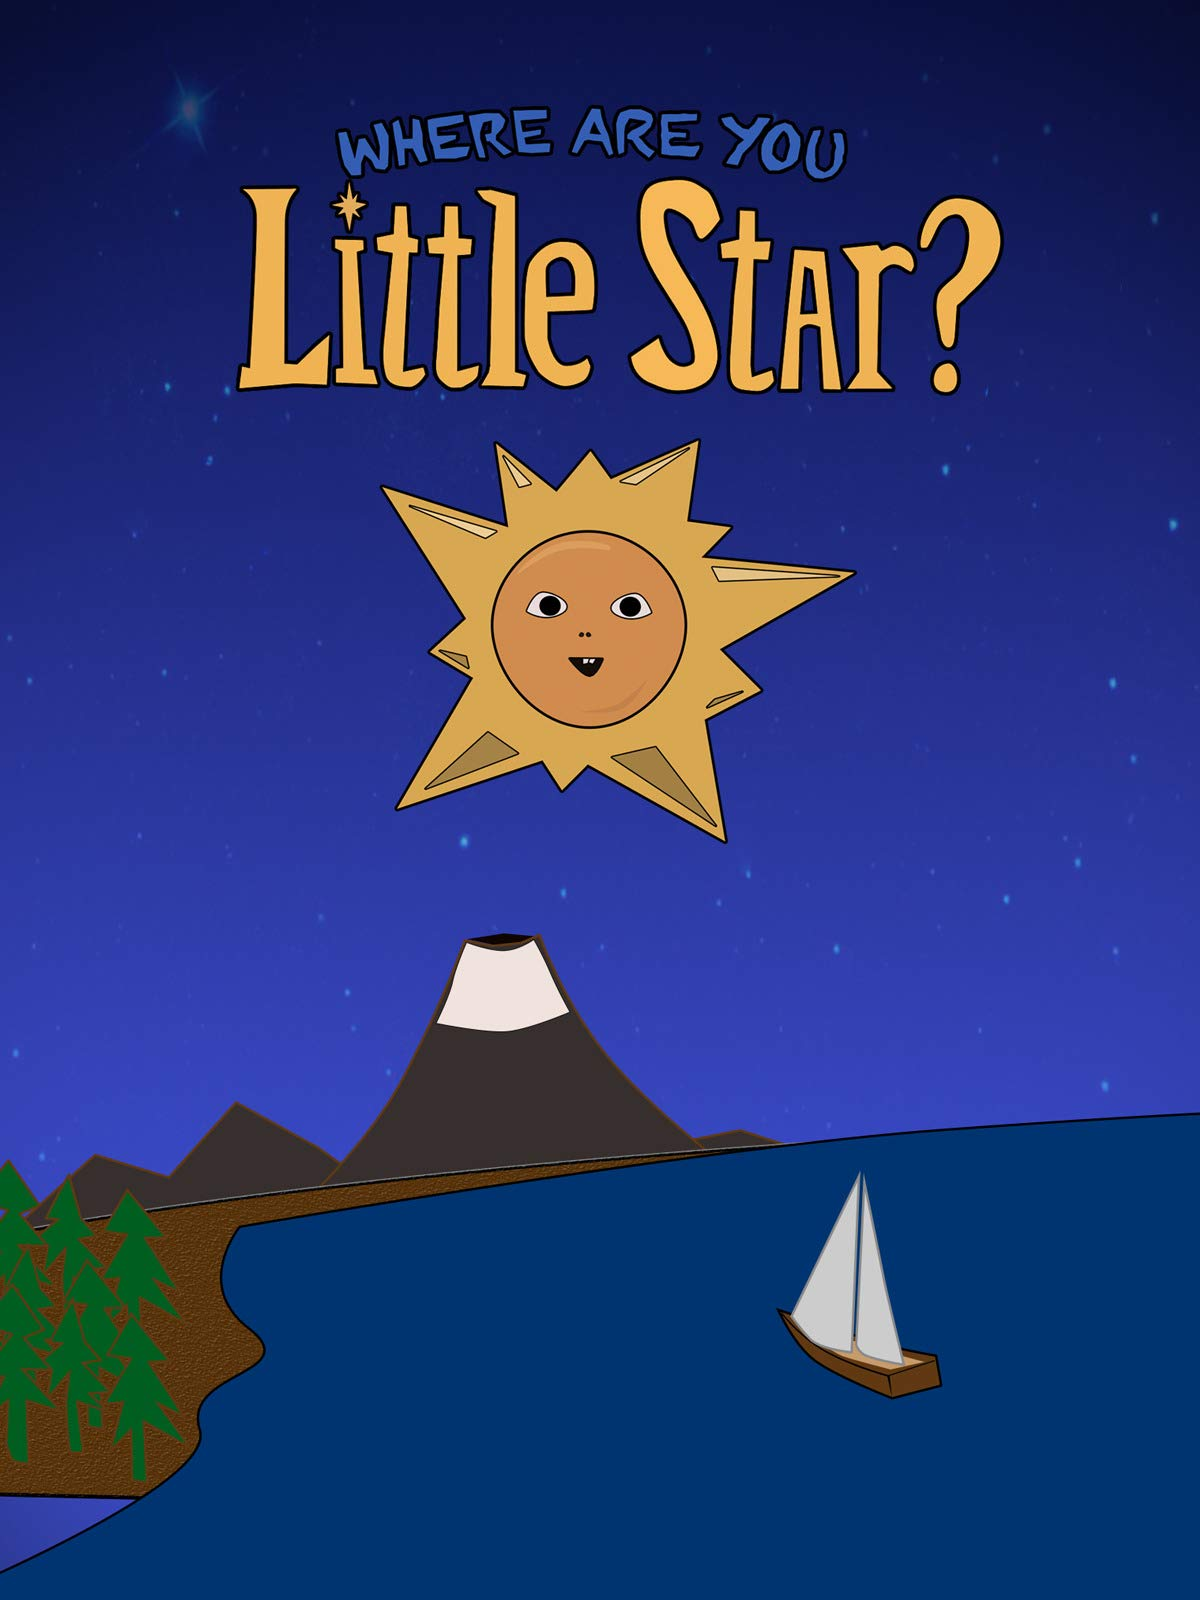 Where Are You LIttle Star?